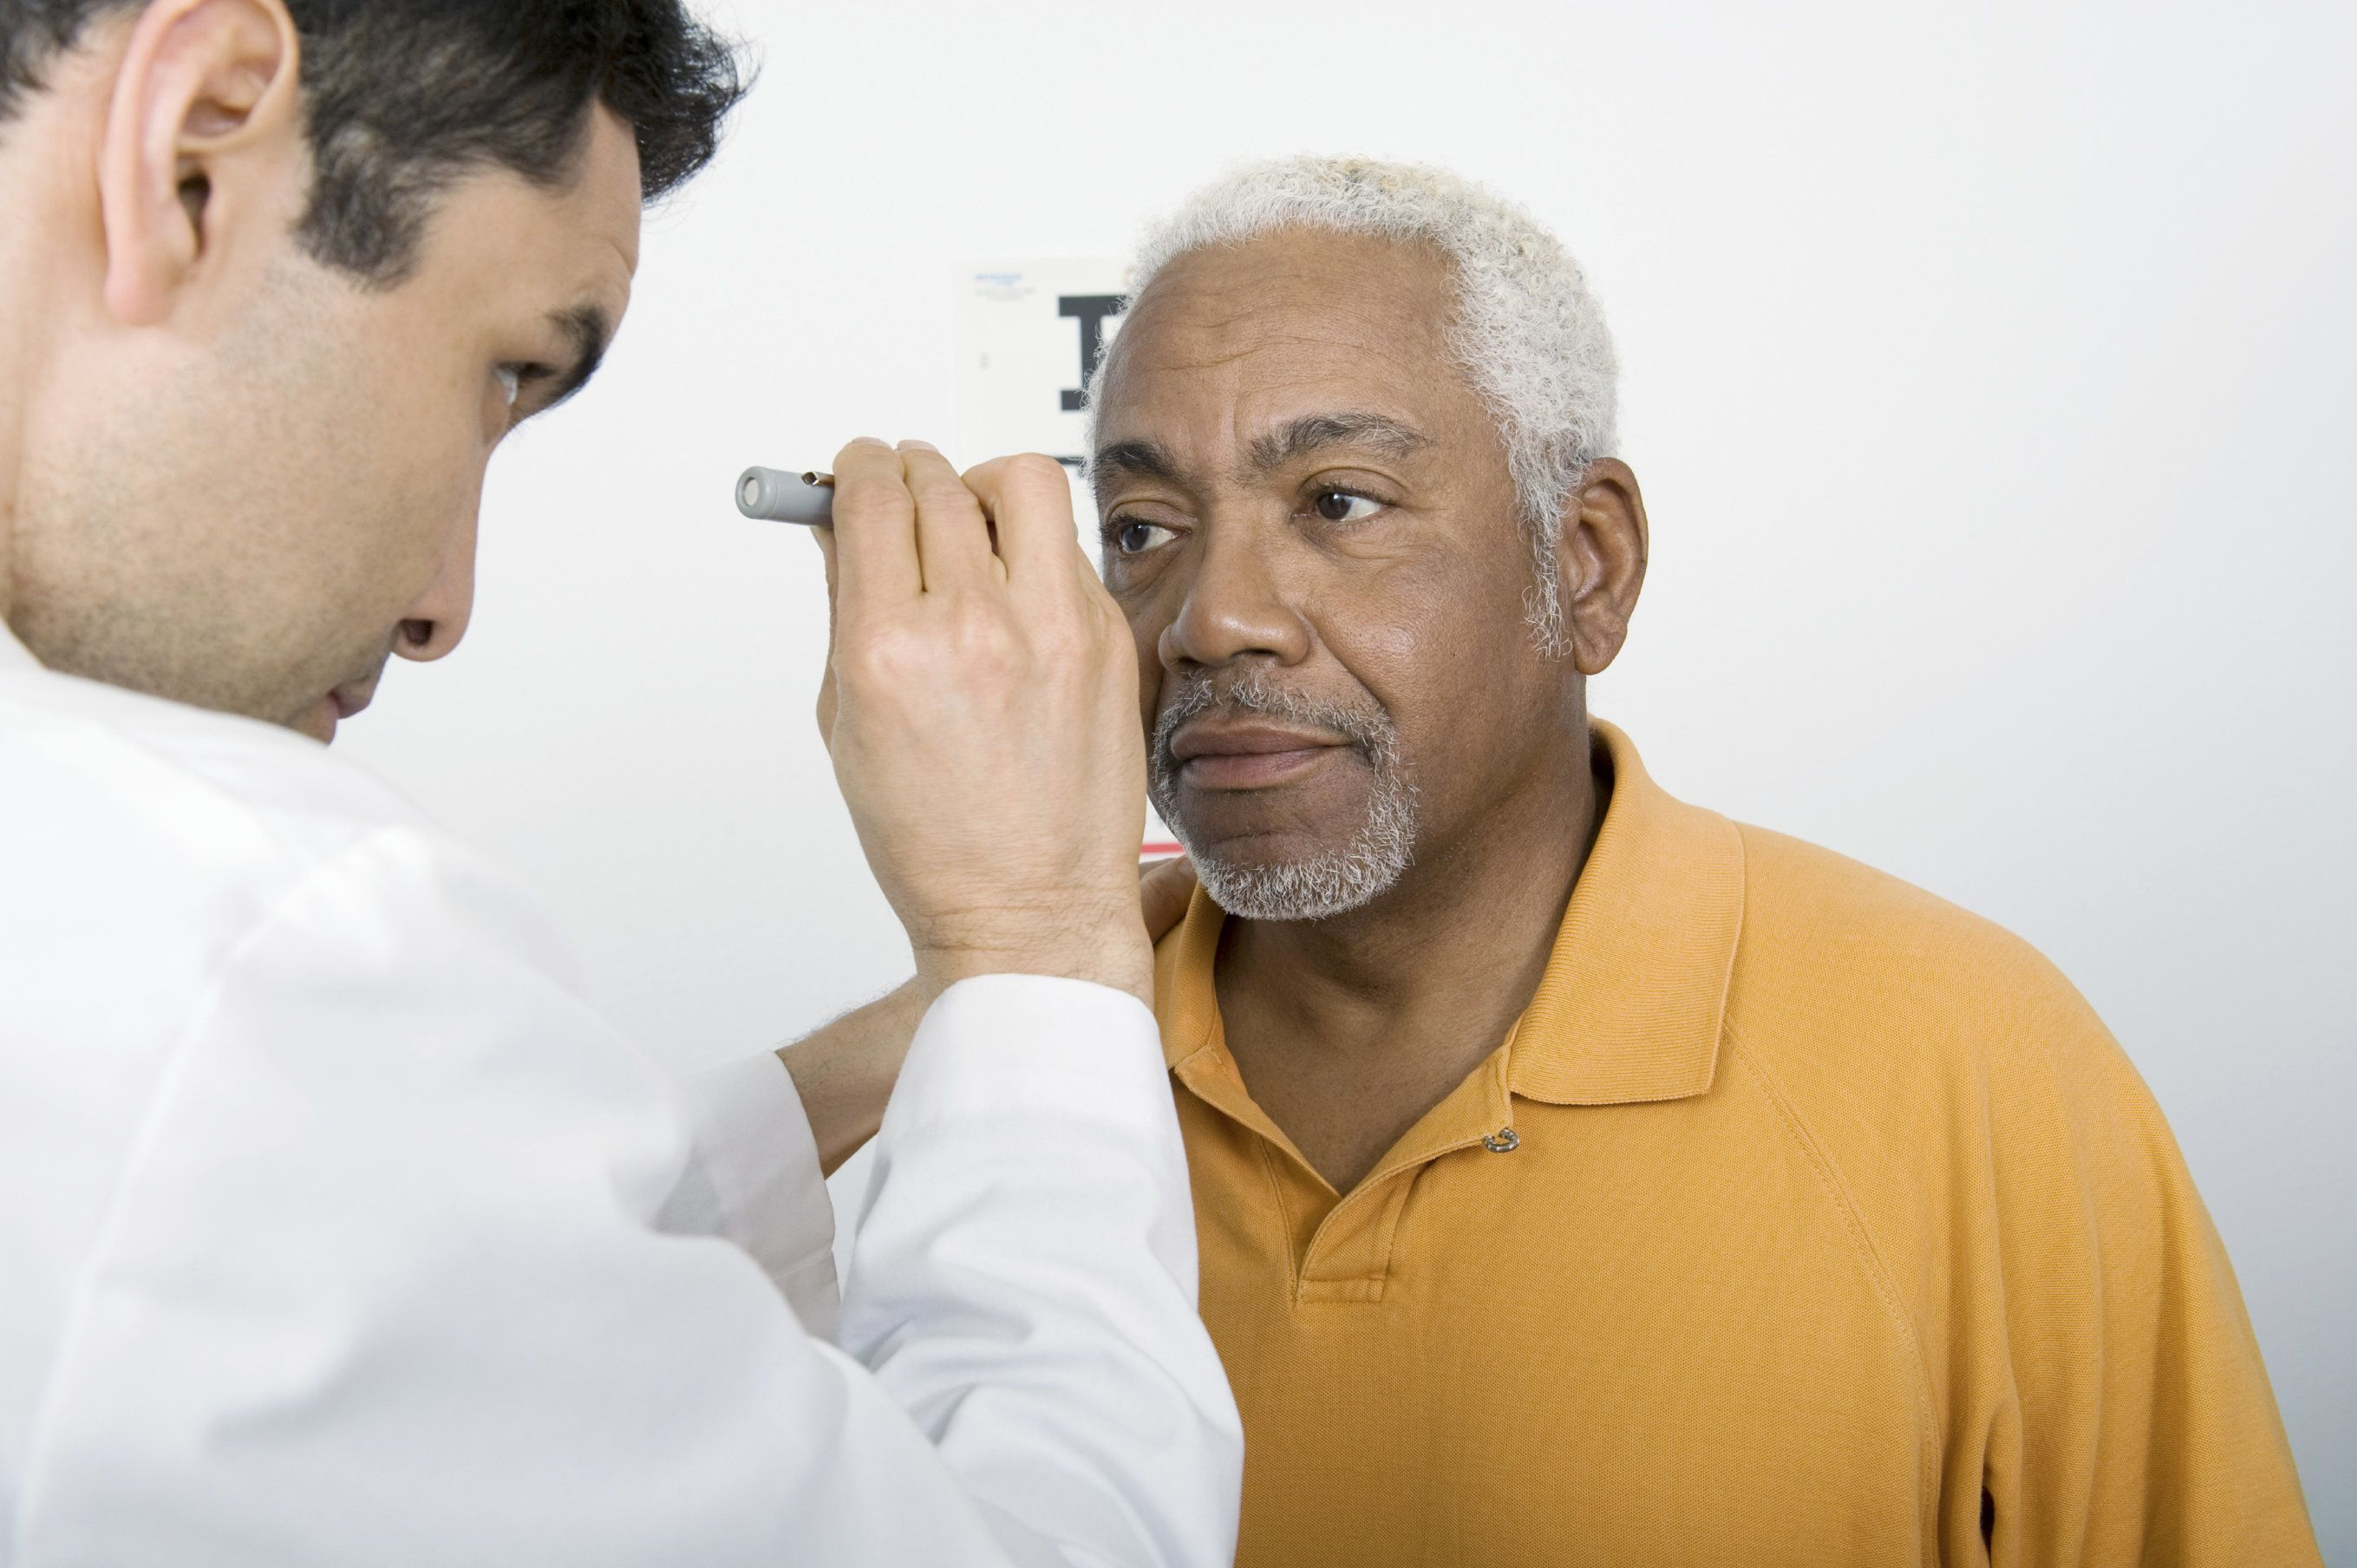 A patient undergoing a comprehensive eye exam